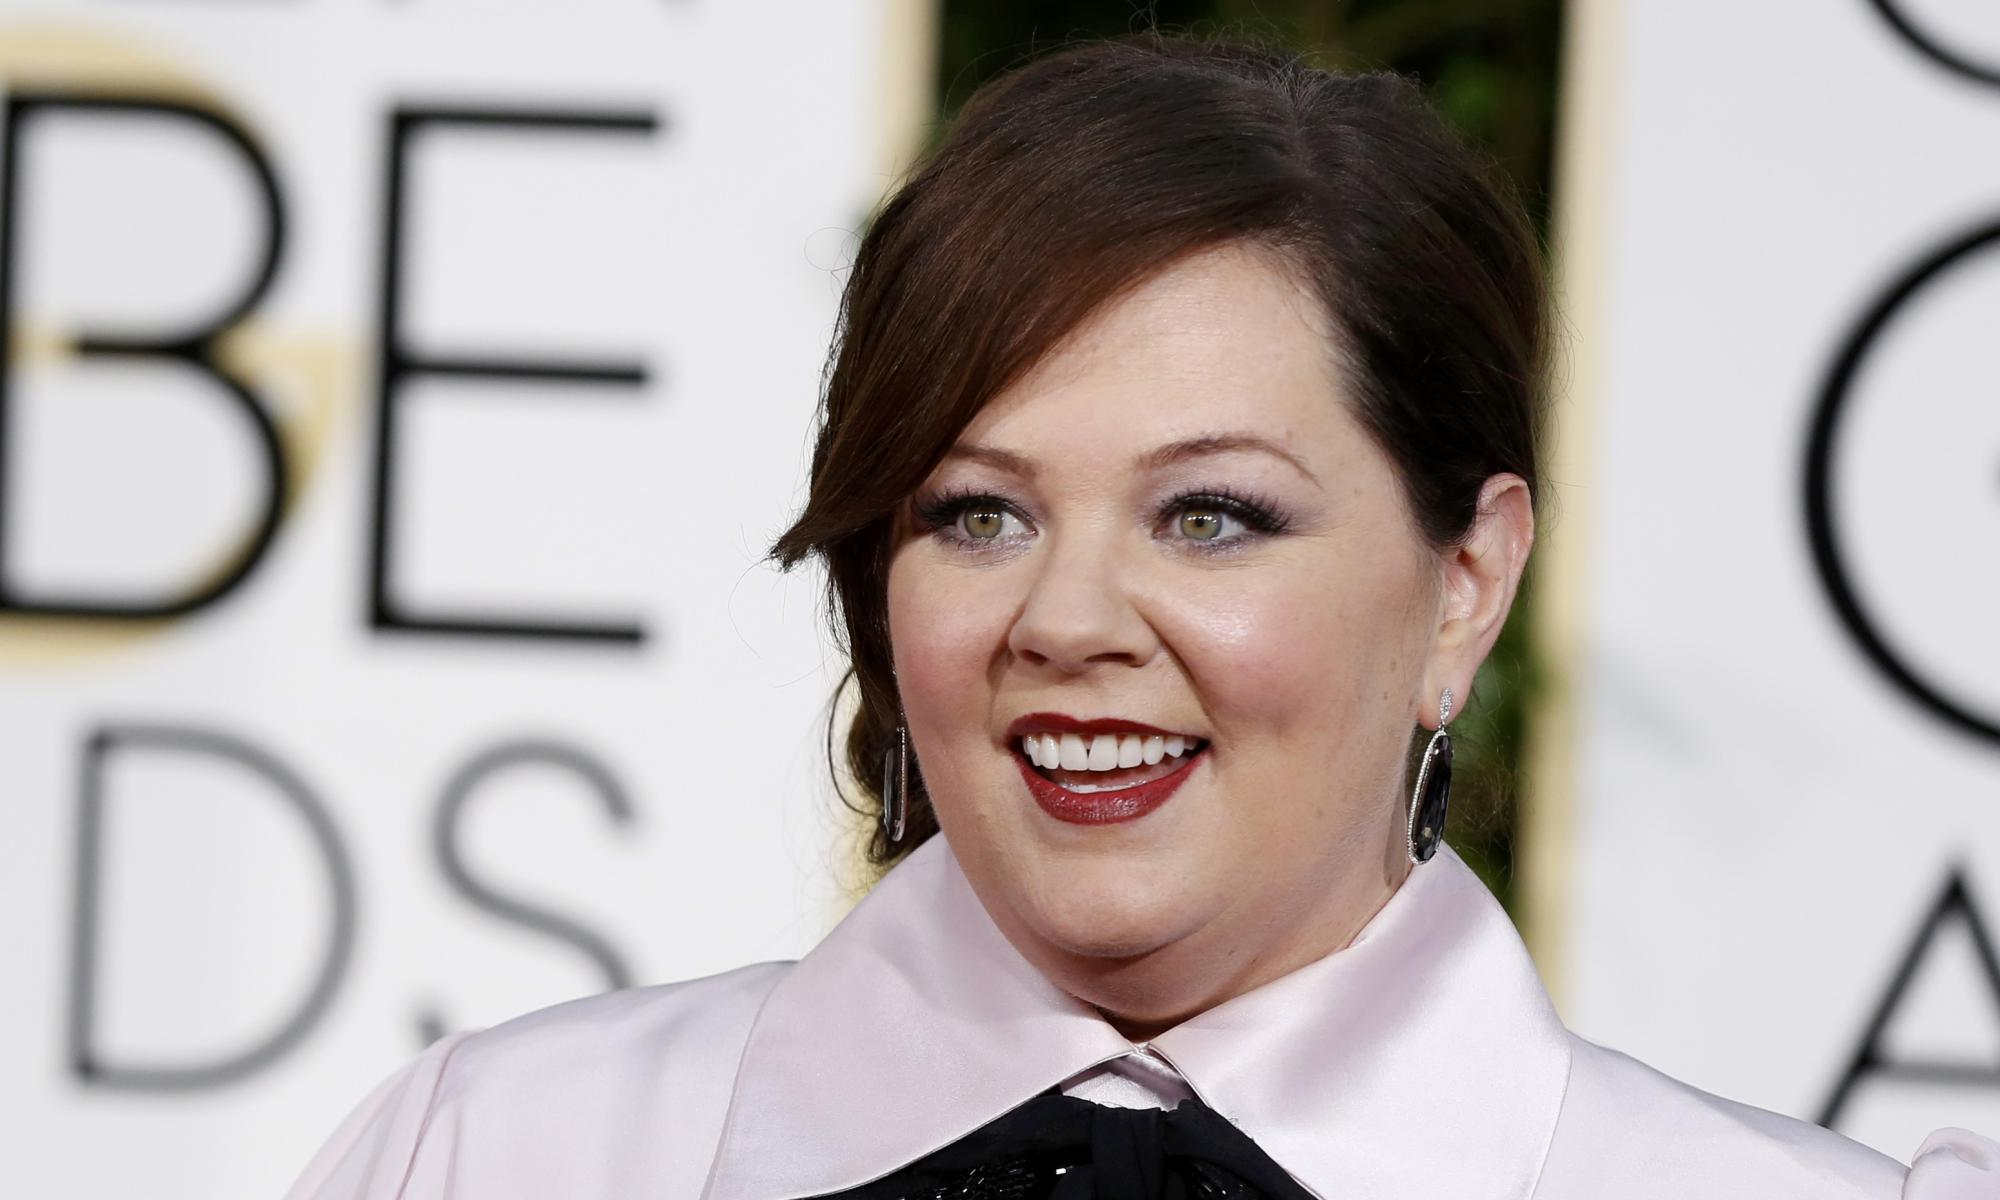 Melissa Mccarthy Hairstyle Wallpaper 60639 2000x1200 px ...